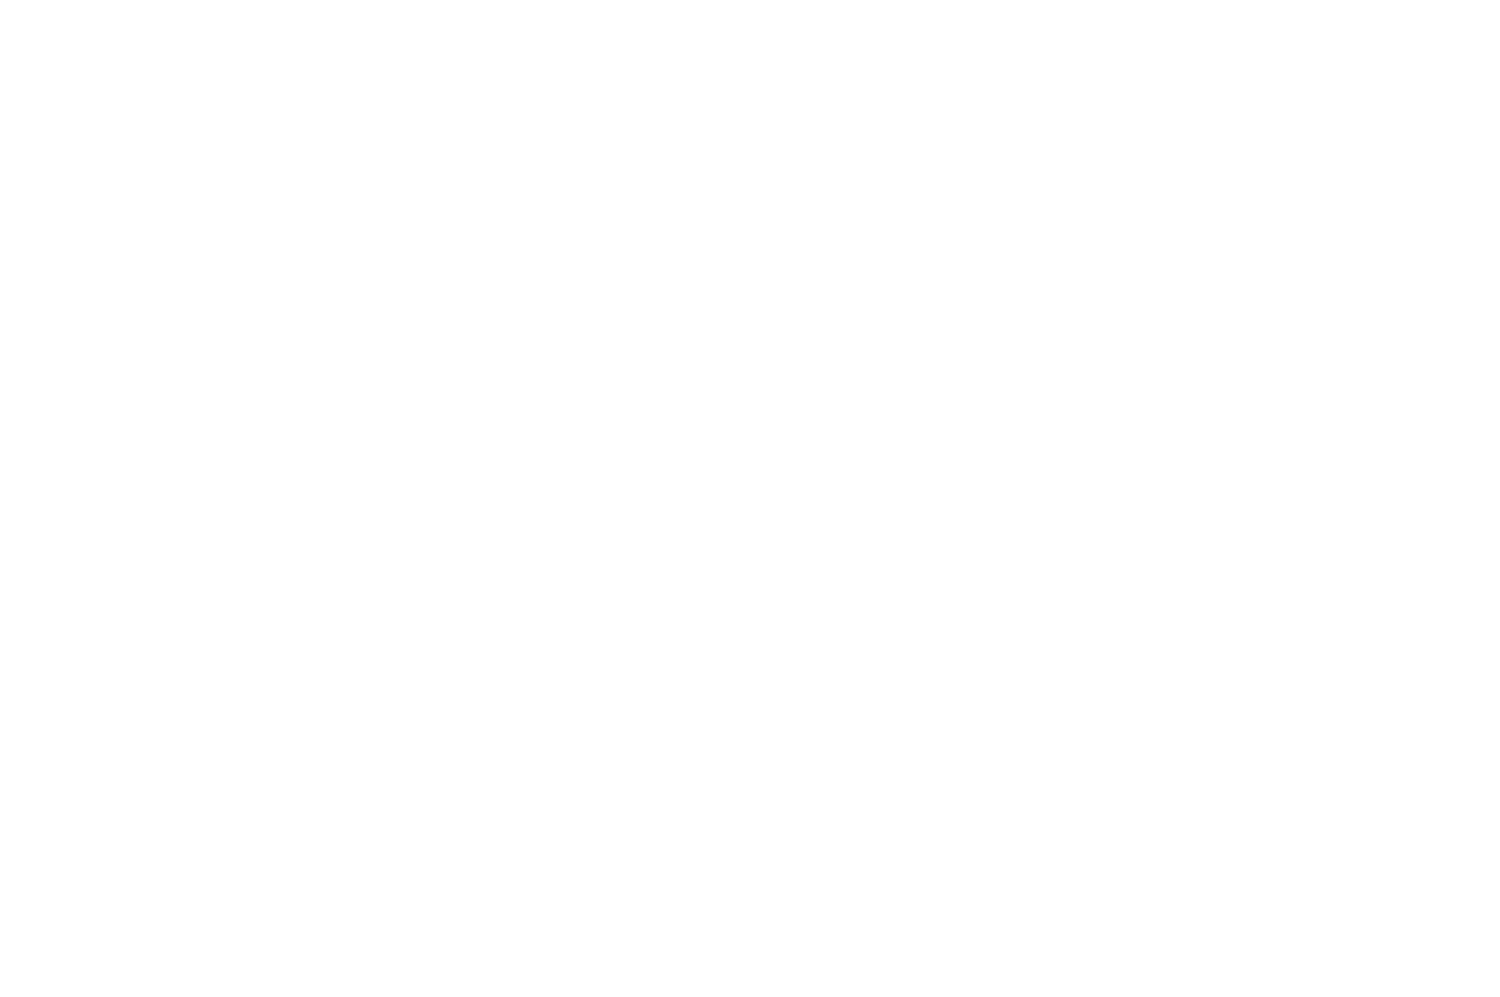 Dylan Findley